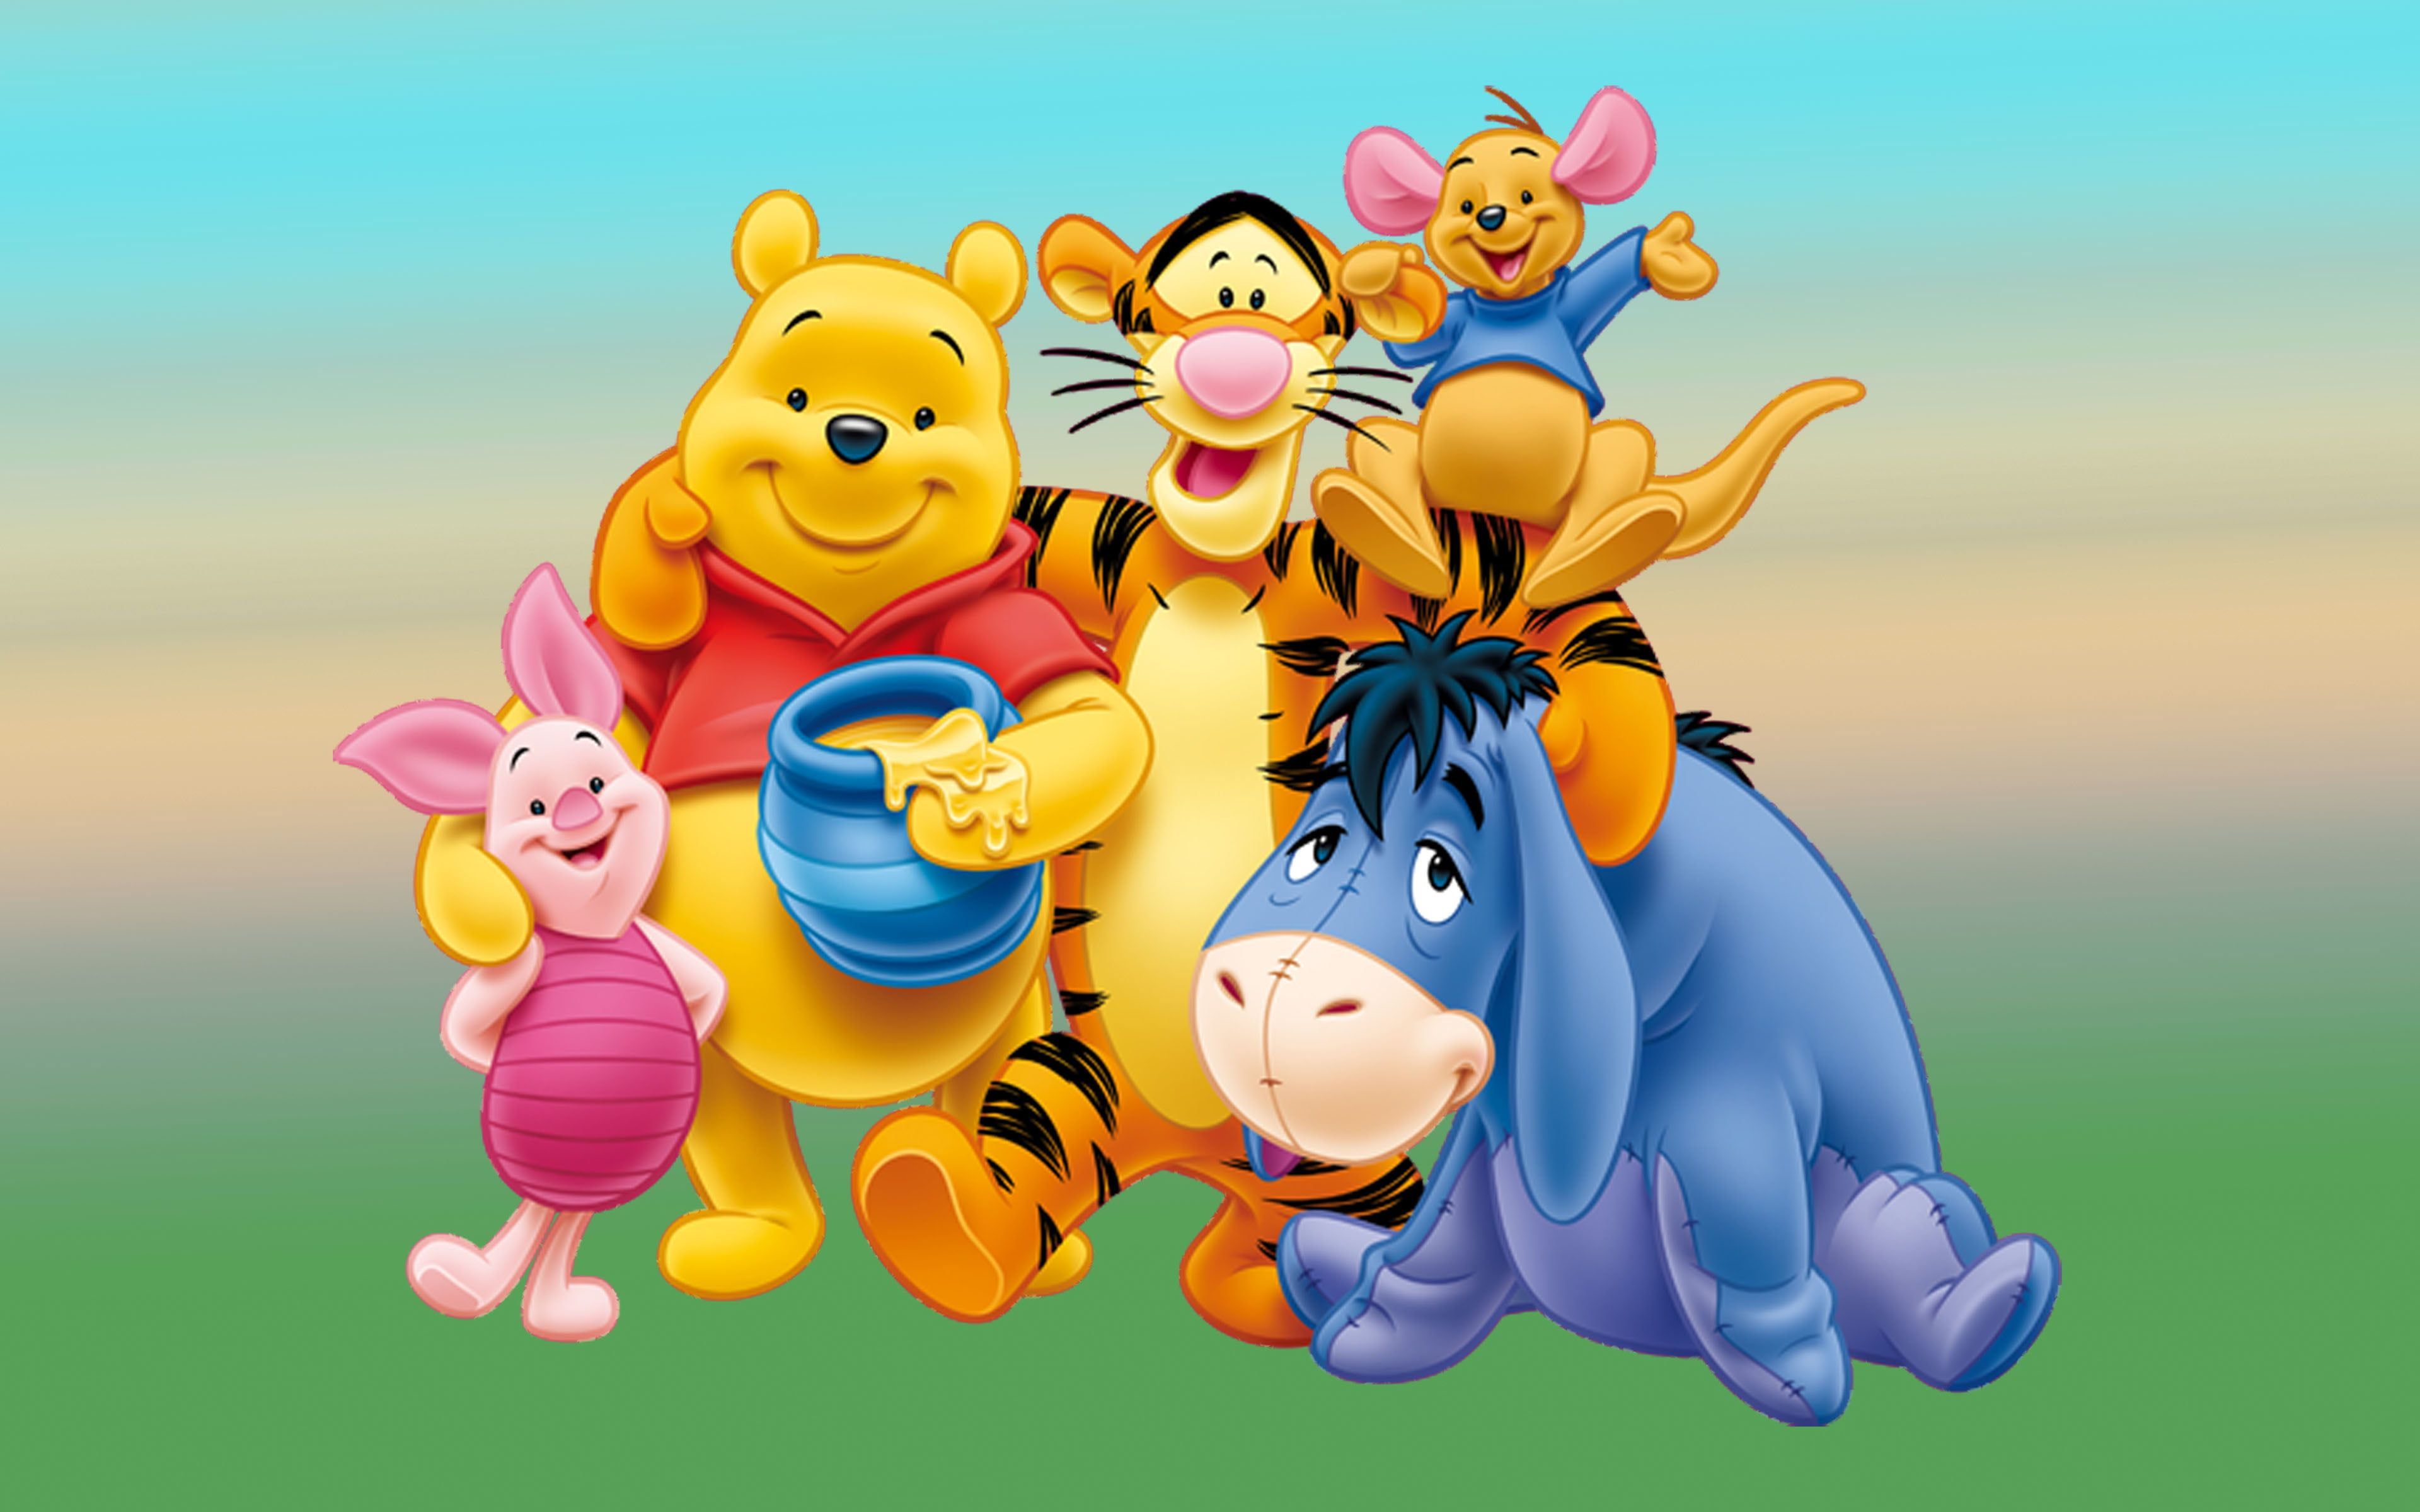 Winnie The Pooh Characters Image Desktop Hd Wallpaper For Mobile Phones Tablet And Pc 38 In 2021 Mobile Wallpaper Hd Wallpapers For Mobile Wallpapers For Mobile Phones